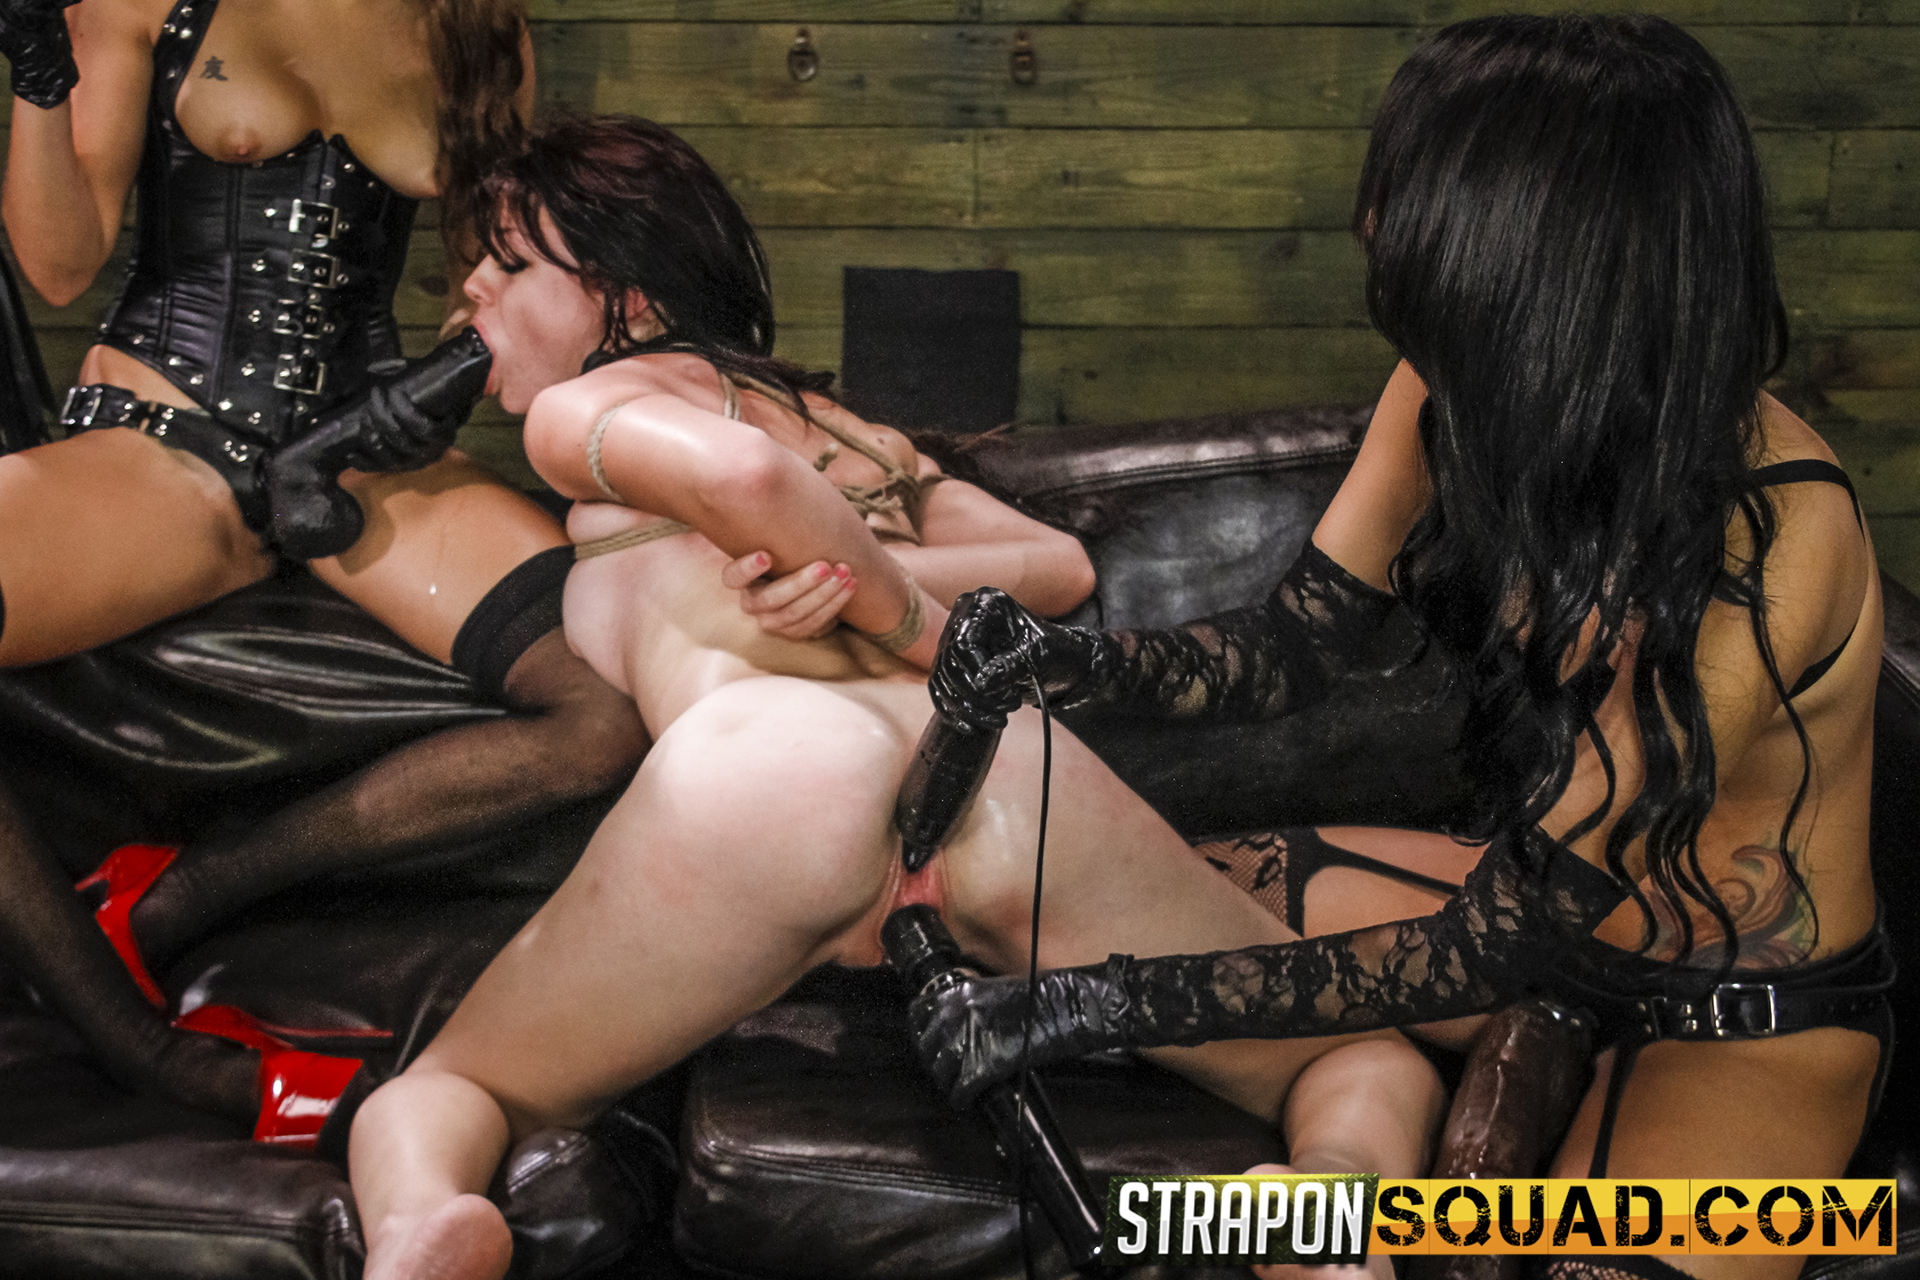 Lesbo Supremacy & Sybian Saddle Threeway With Kaisey Dean, Marina Angel, Esmi Lee